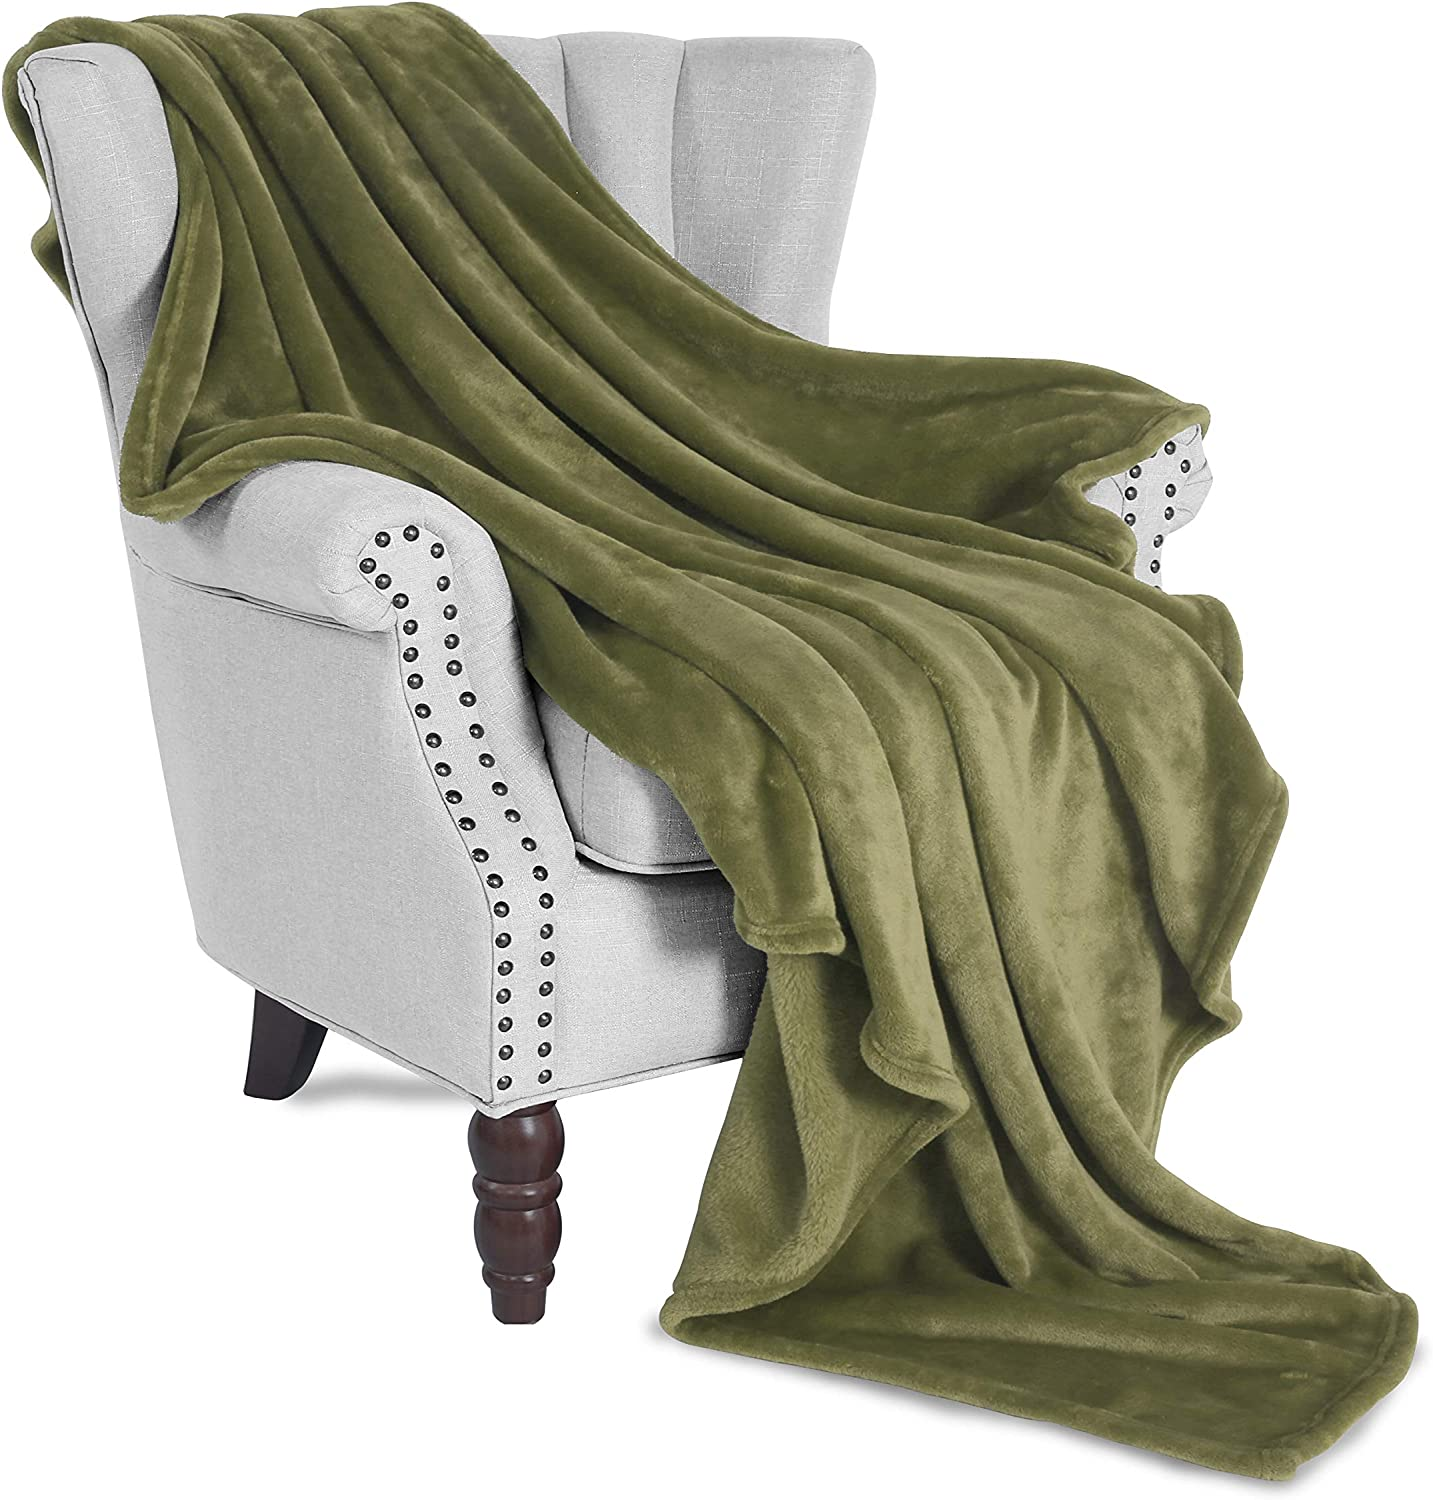 "Exclusivo Mezcla Large Flannel Fleece Plush Soft Throw Blanket – 50"" x 70"" (Olive Green)"